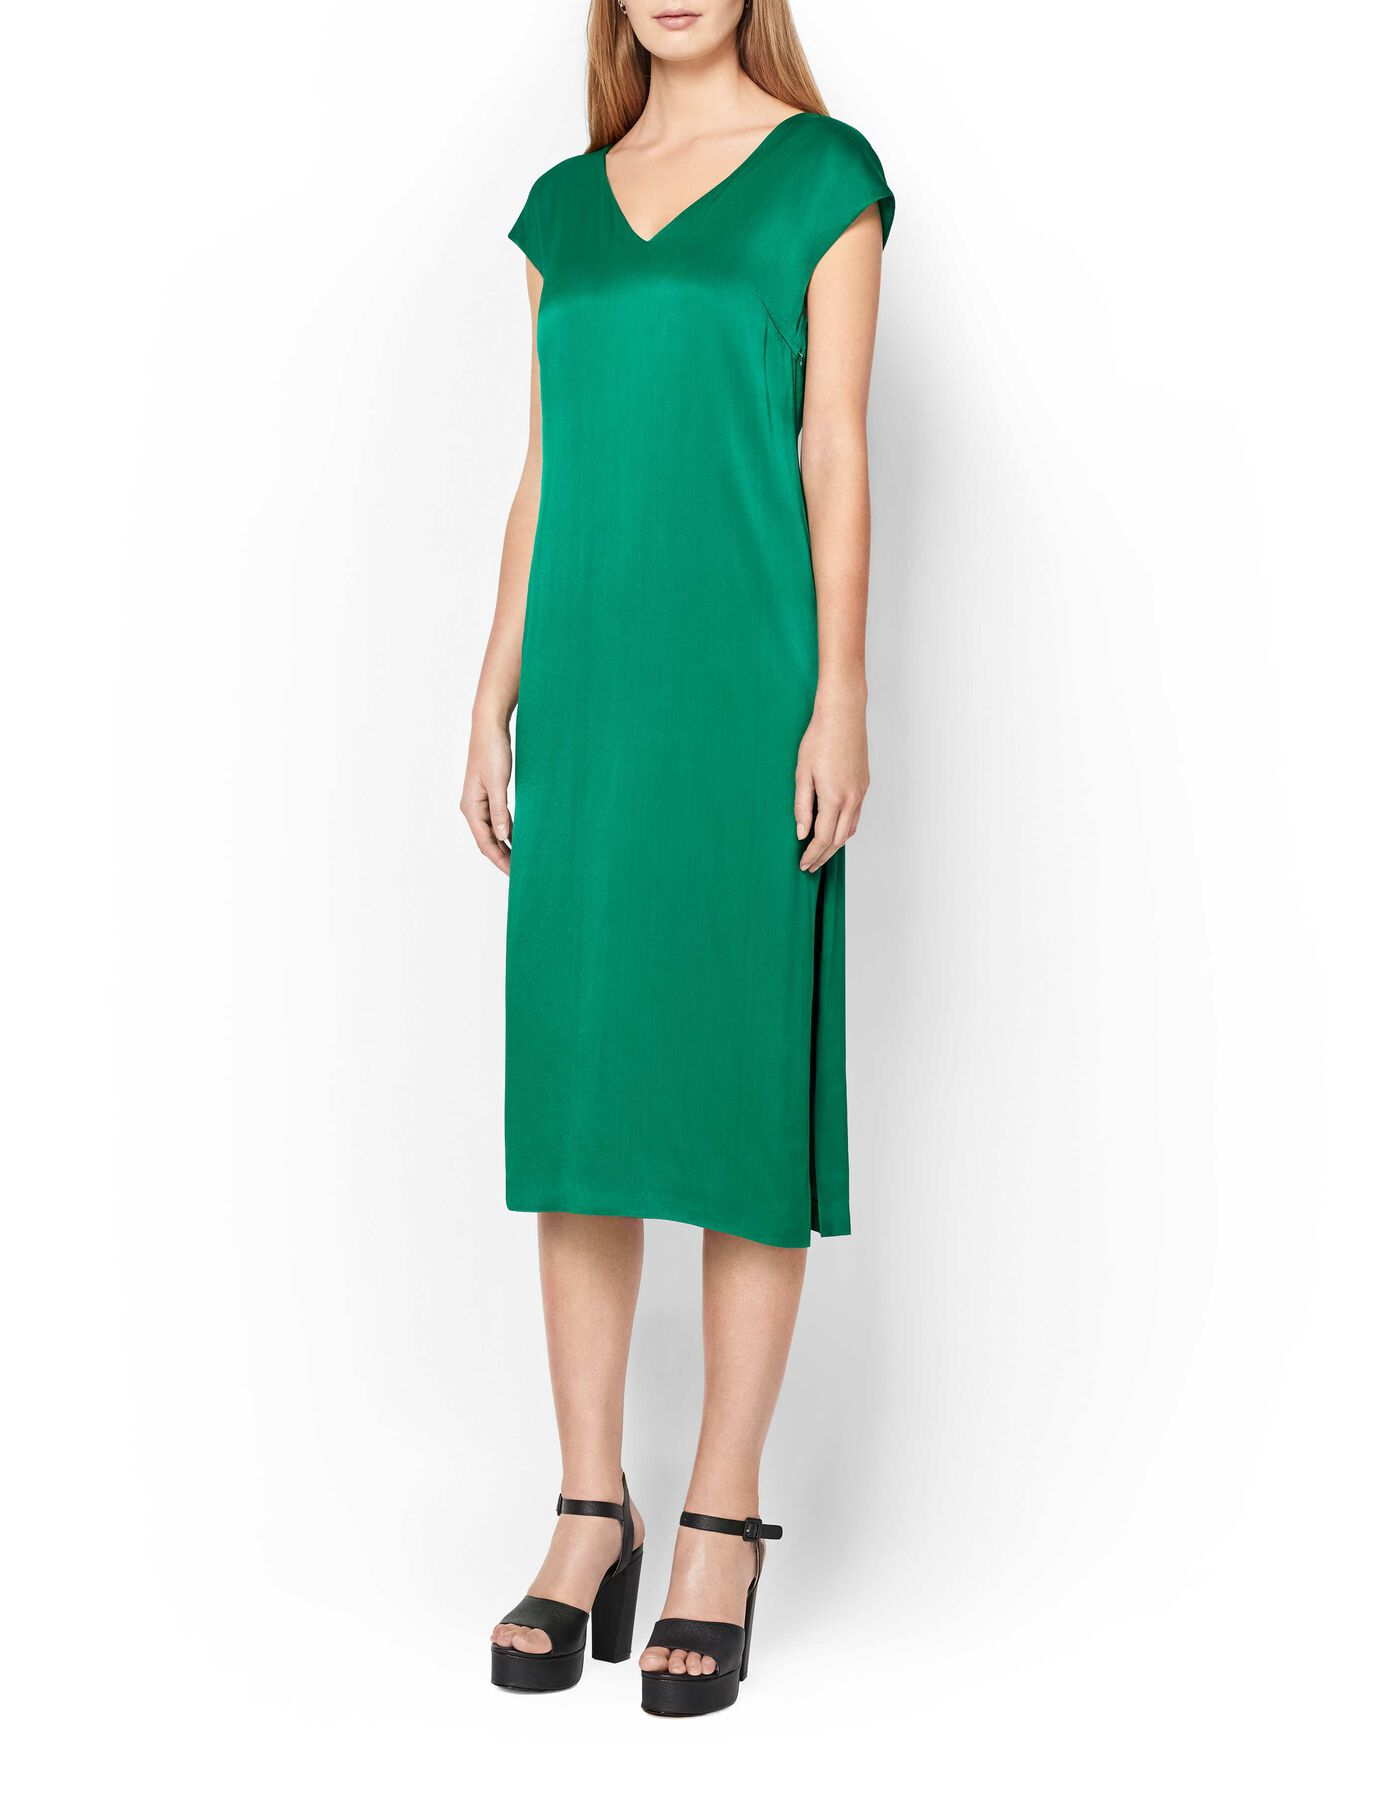 Ibbie dress in Marine Green from Tiger of Sweden